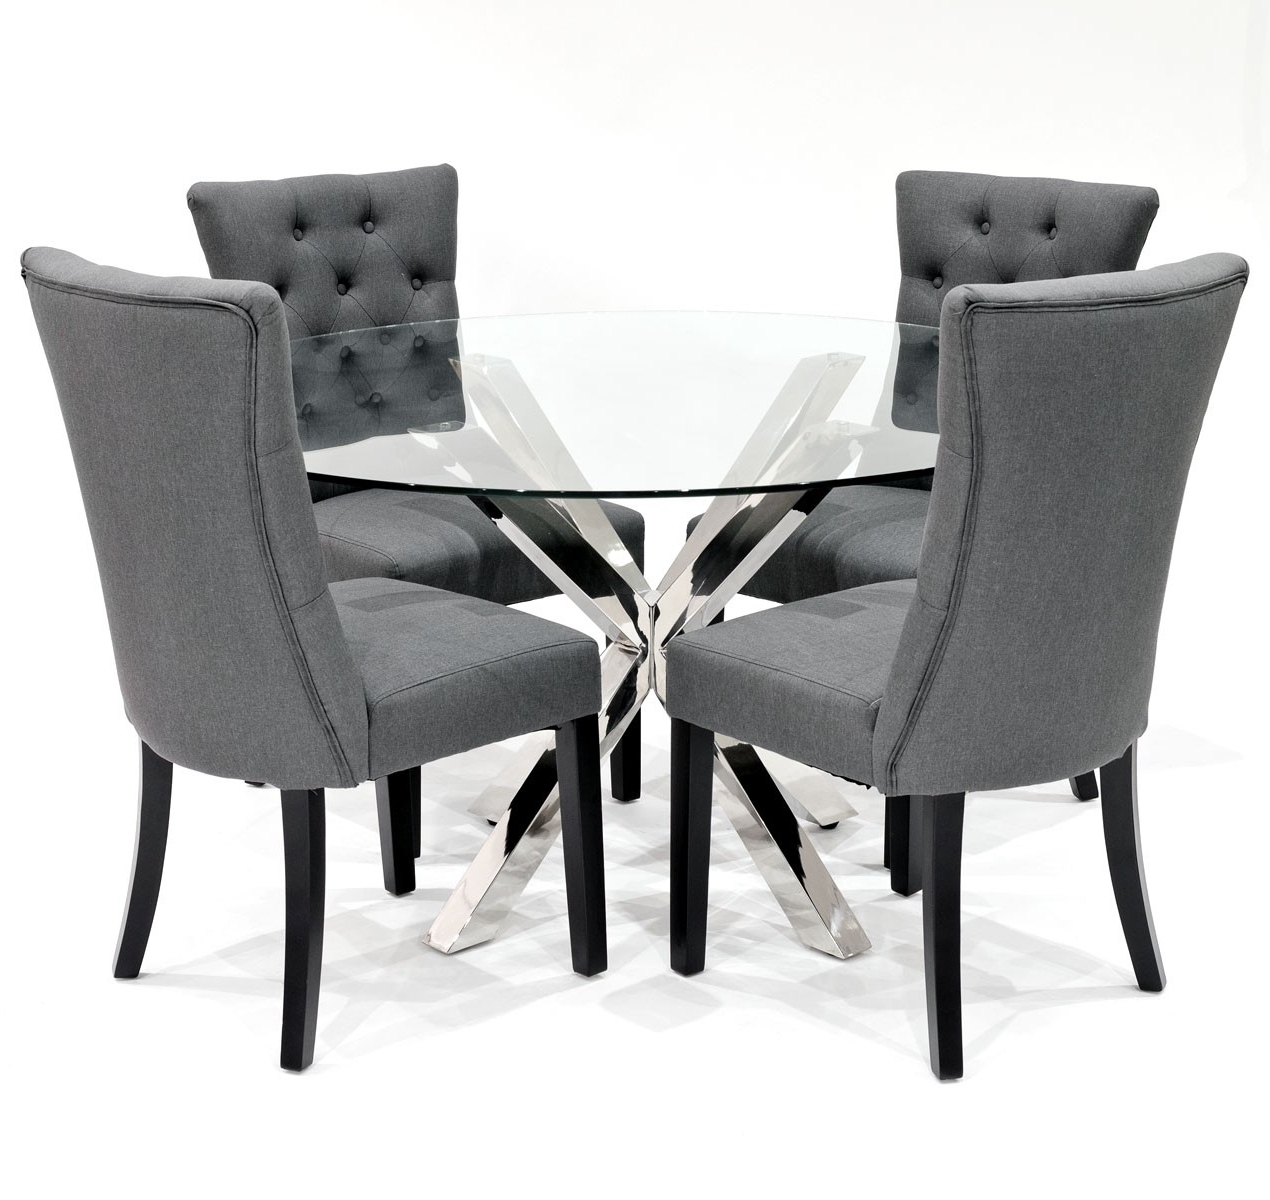 Grey Dining Chairs Within Trendy Crossly Dining Table And Sanderson Grey Dining Chair Set – Be Fabulous! (Gallery 2 of 20)